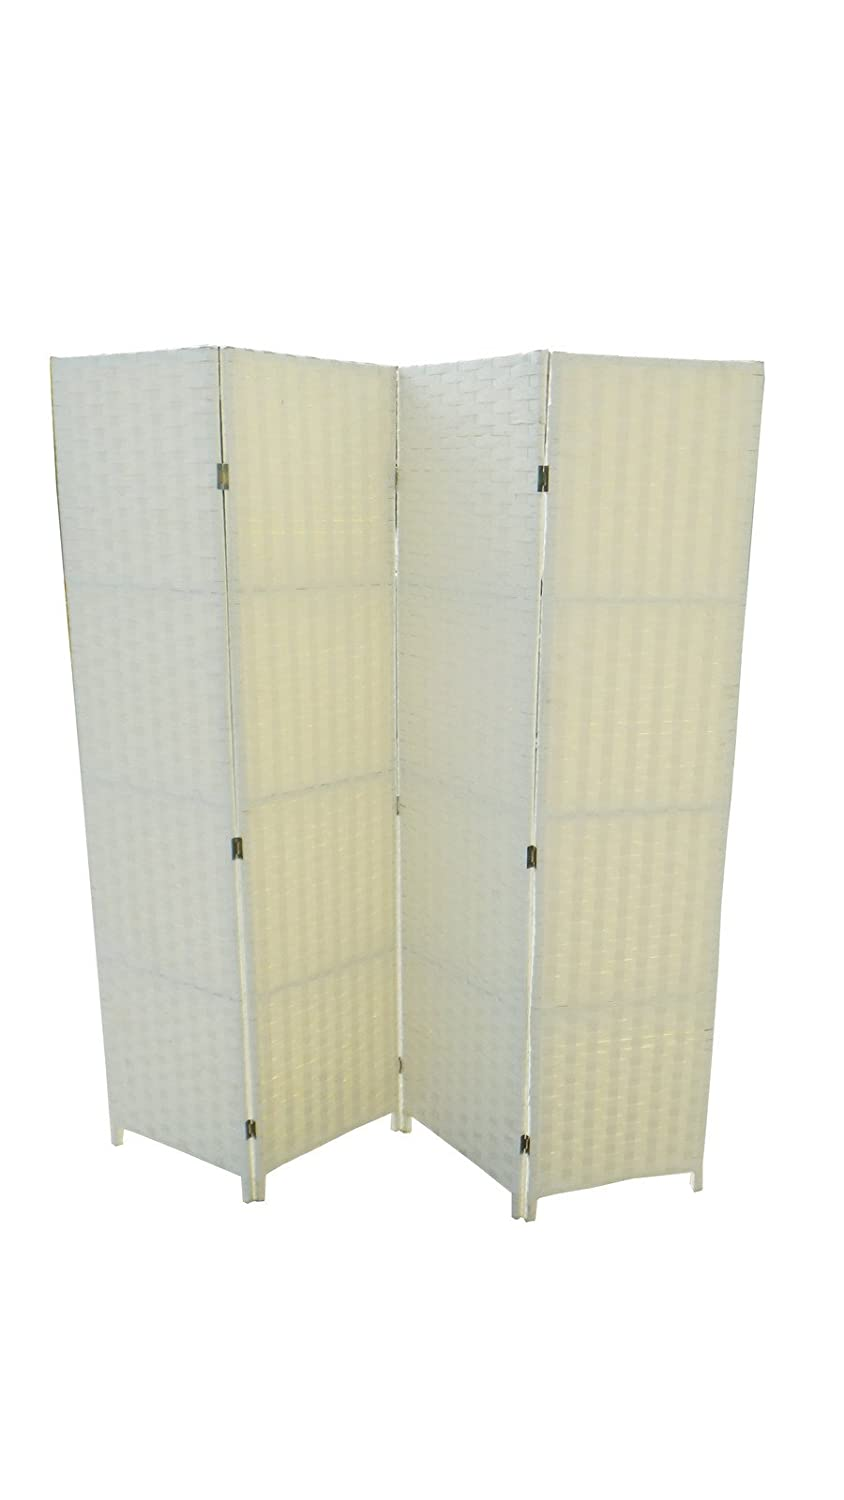 4 PANEL CREAM WICKER SCREEN ROOM DIVIDER Amazoncouk Kitchen Home